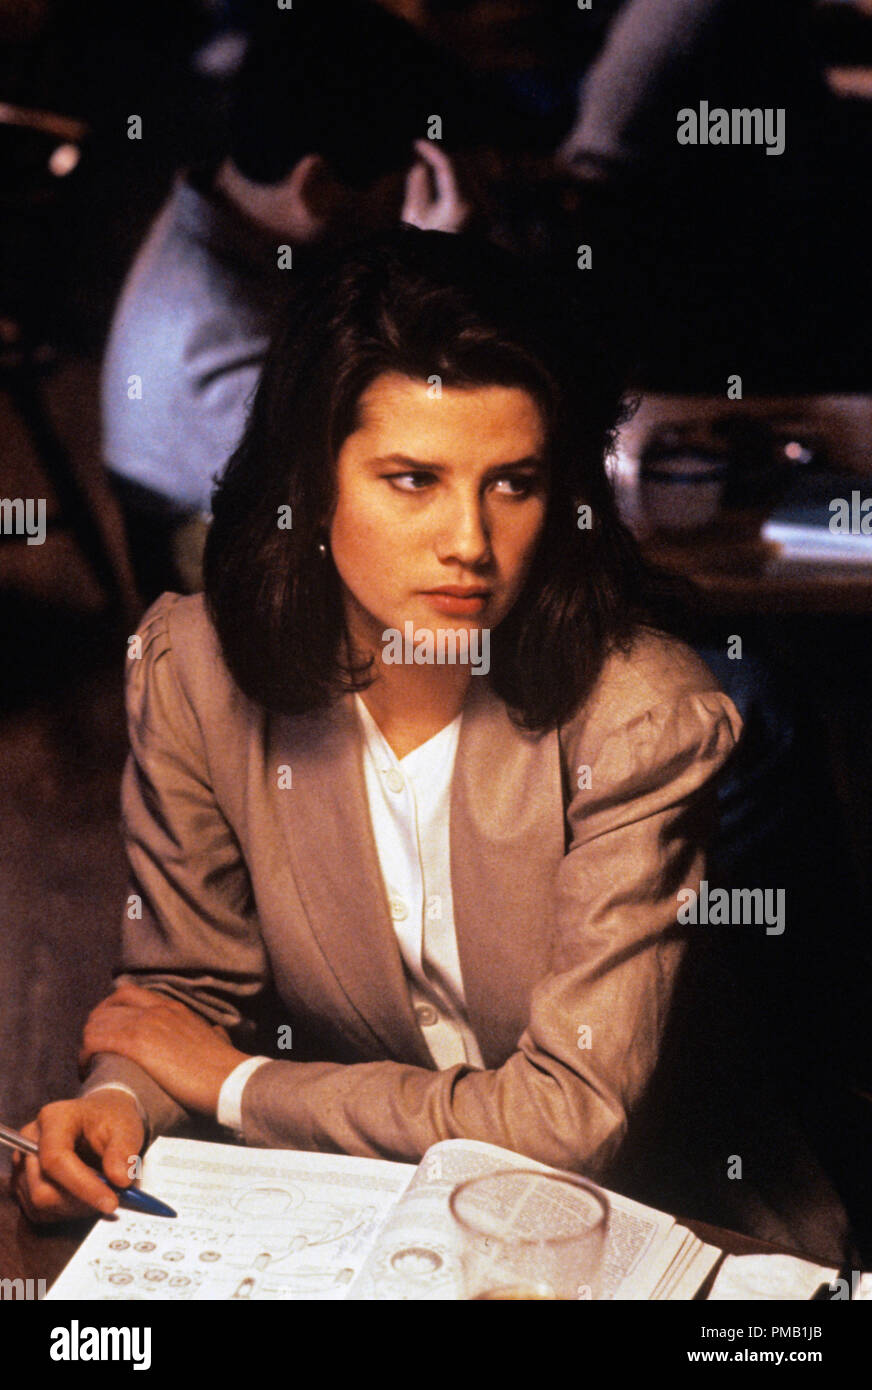 Film still or Publicity still from 'Gross Anatomy'  Daphne Zuniga  © 1989 Touchstone Pictures  All Rights Reserved   File Reference # 33025_008THA  For Editorial Use Only - Stock Image